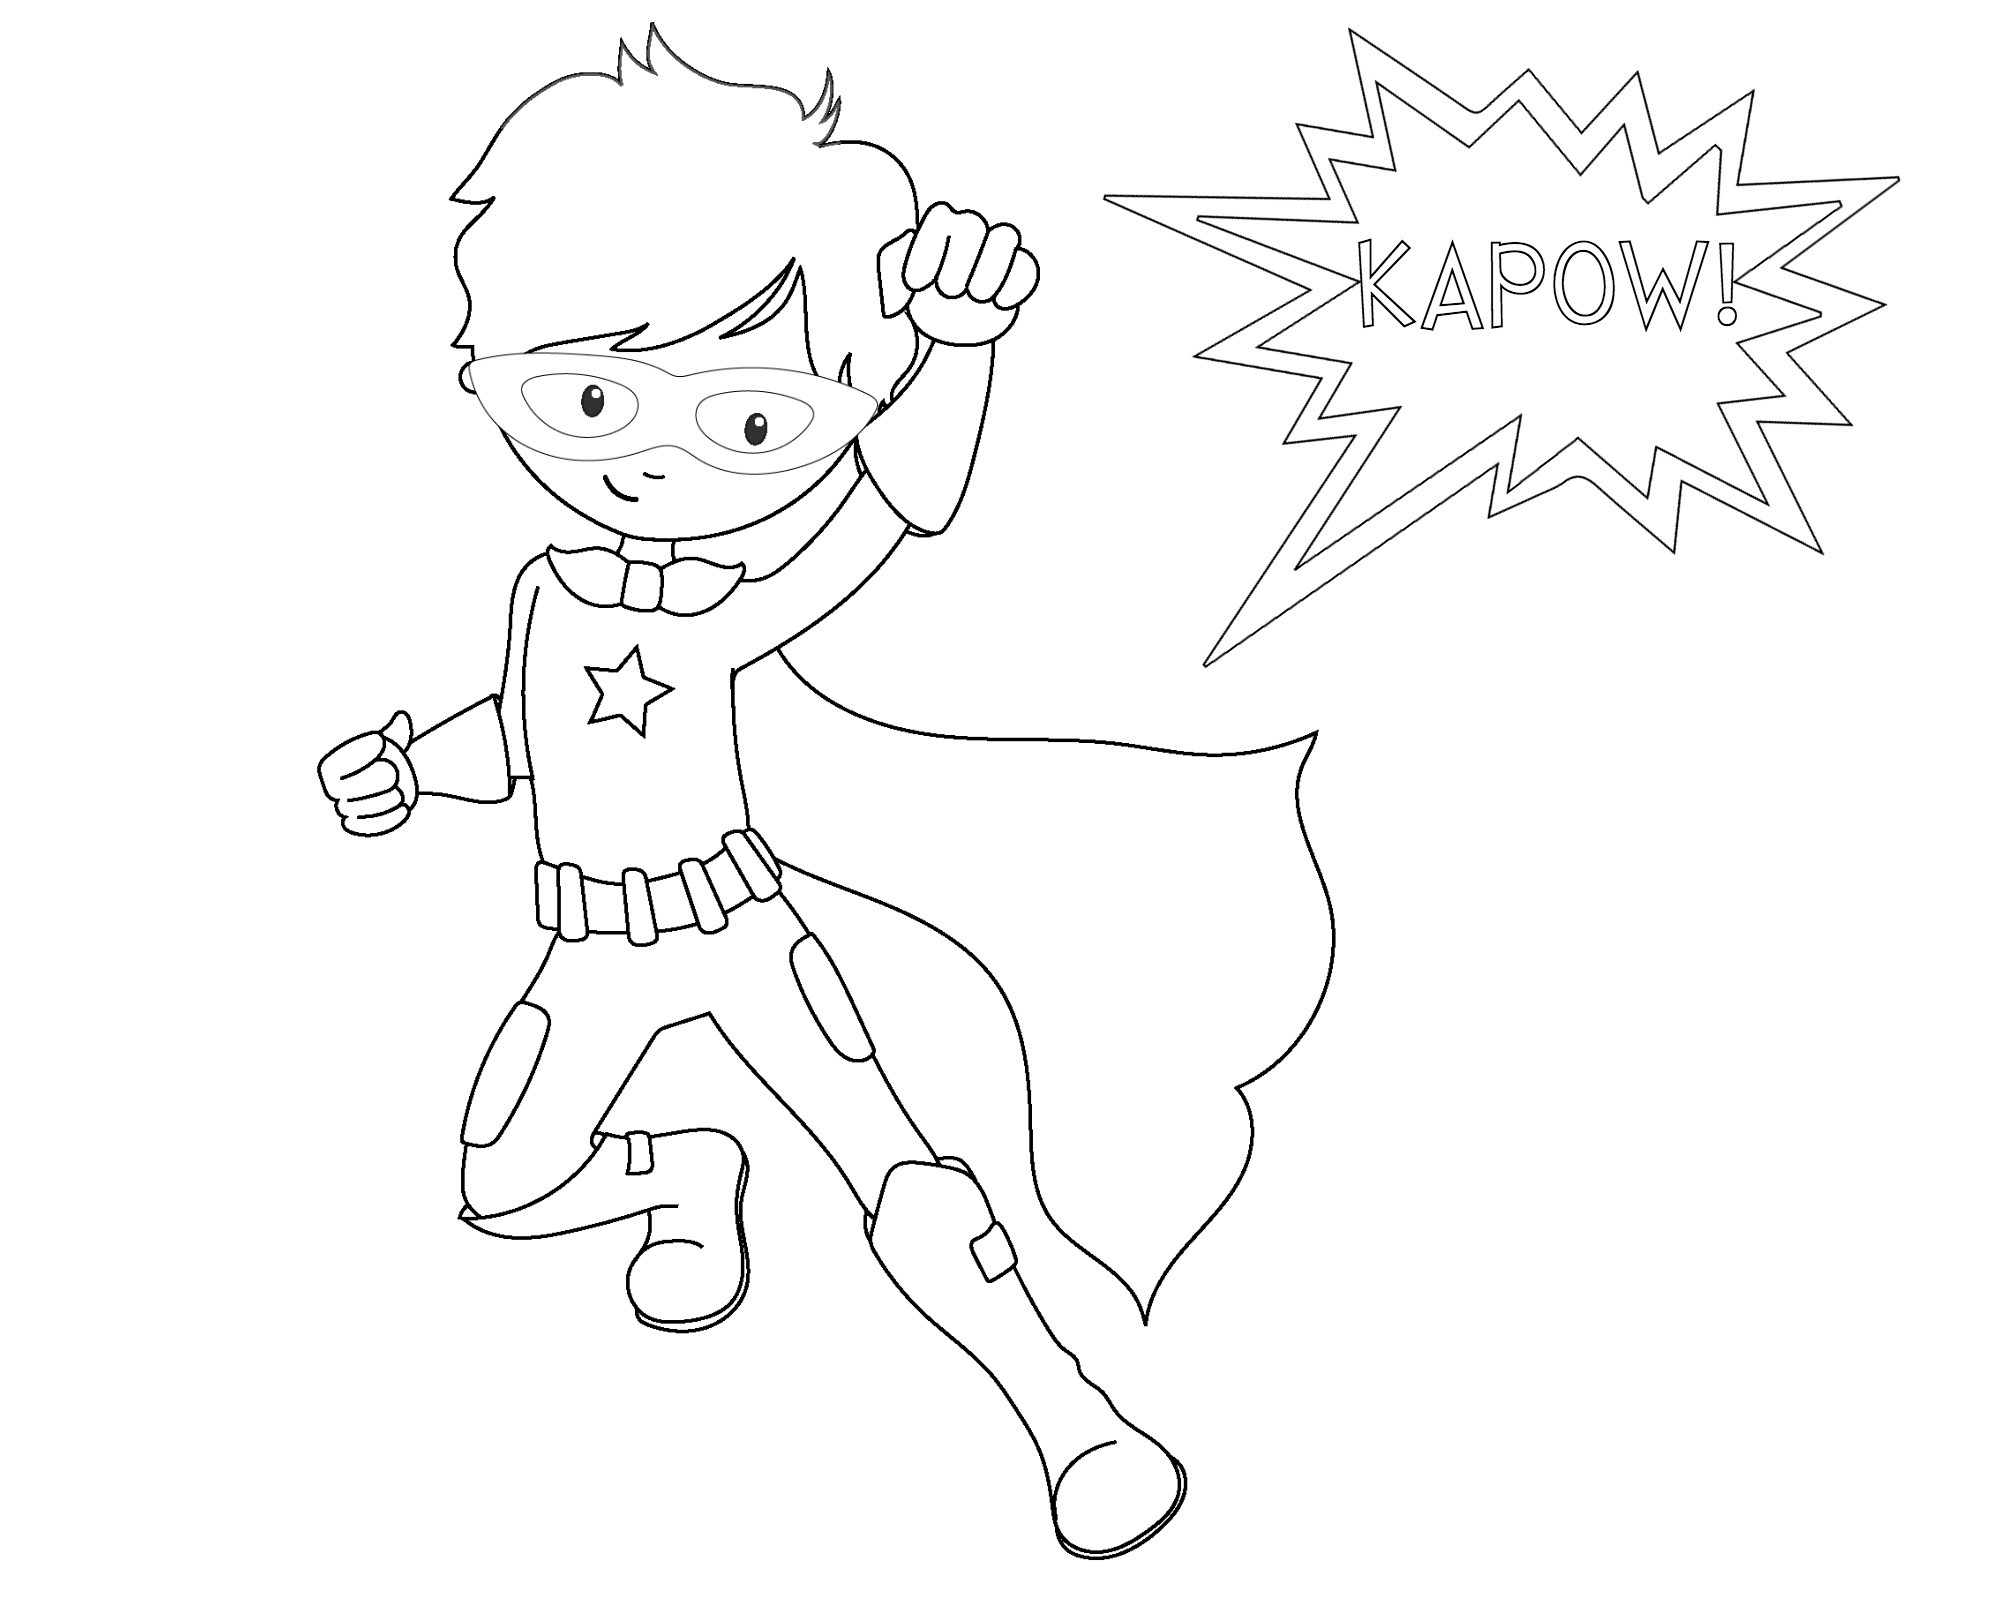 Super Hero Coloring Book Pages  Free Printable Superhero Coloring Sheets for Kids Crazy